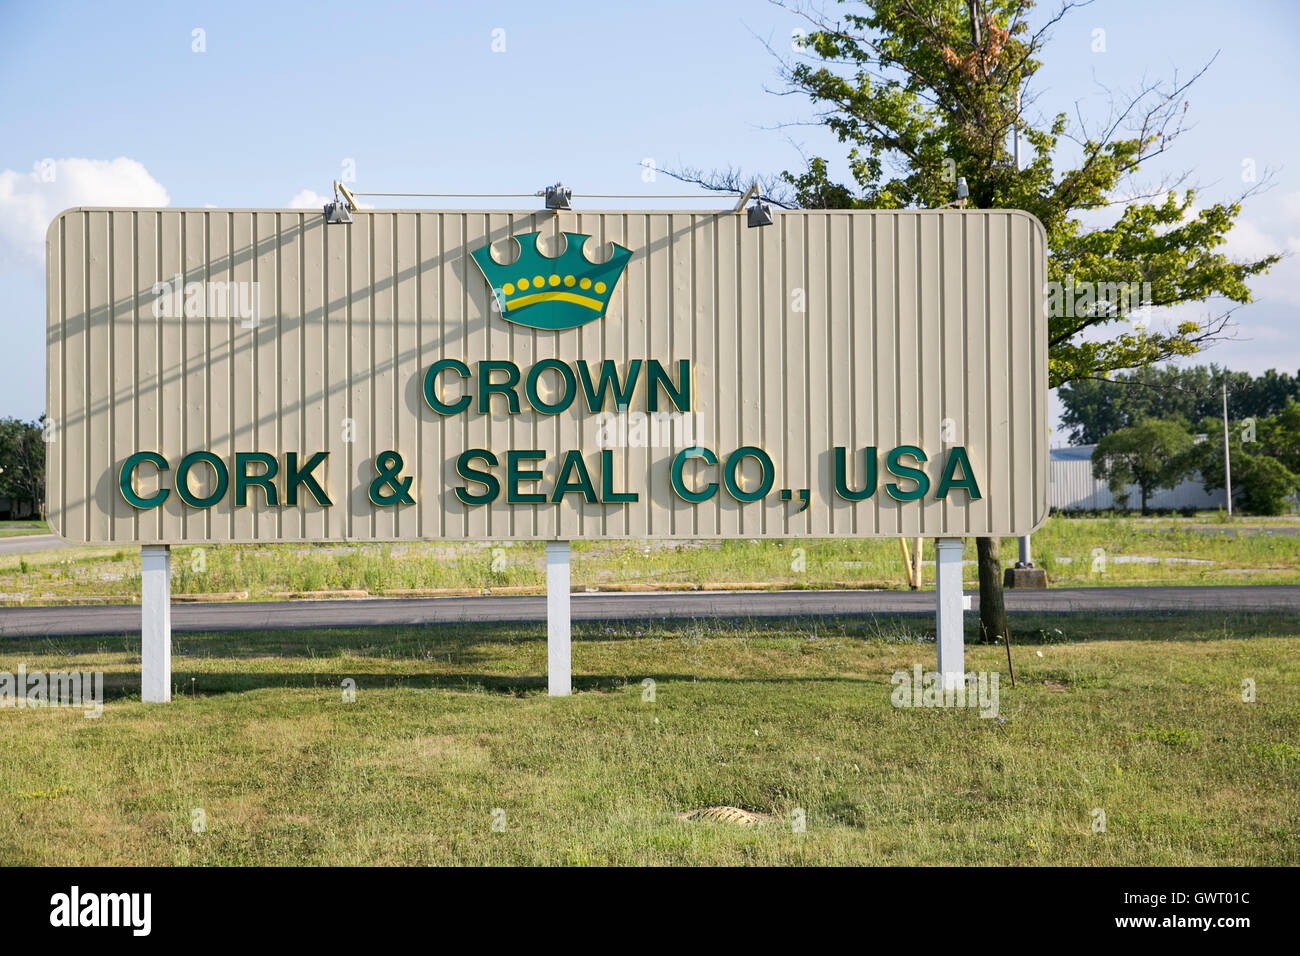 A logo sign outside of a facility occupied by the Crown Cork & Seal Company in Toledo, Ohio on July 16, 2016. - Stock Image